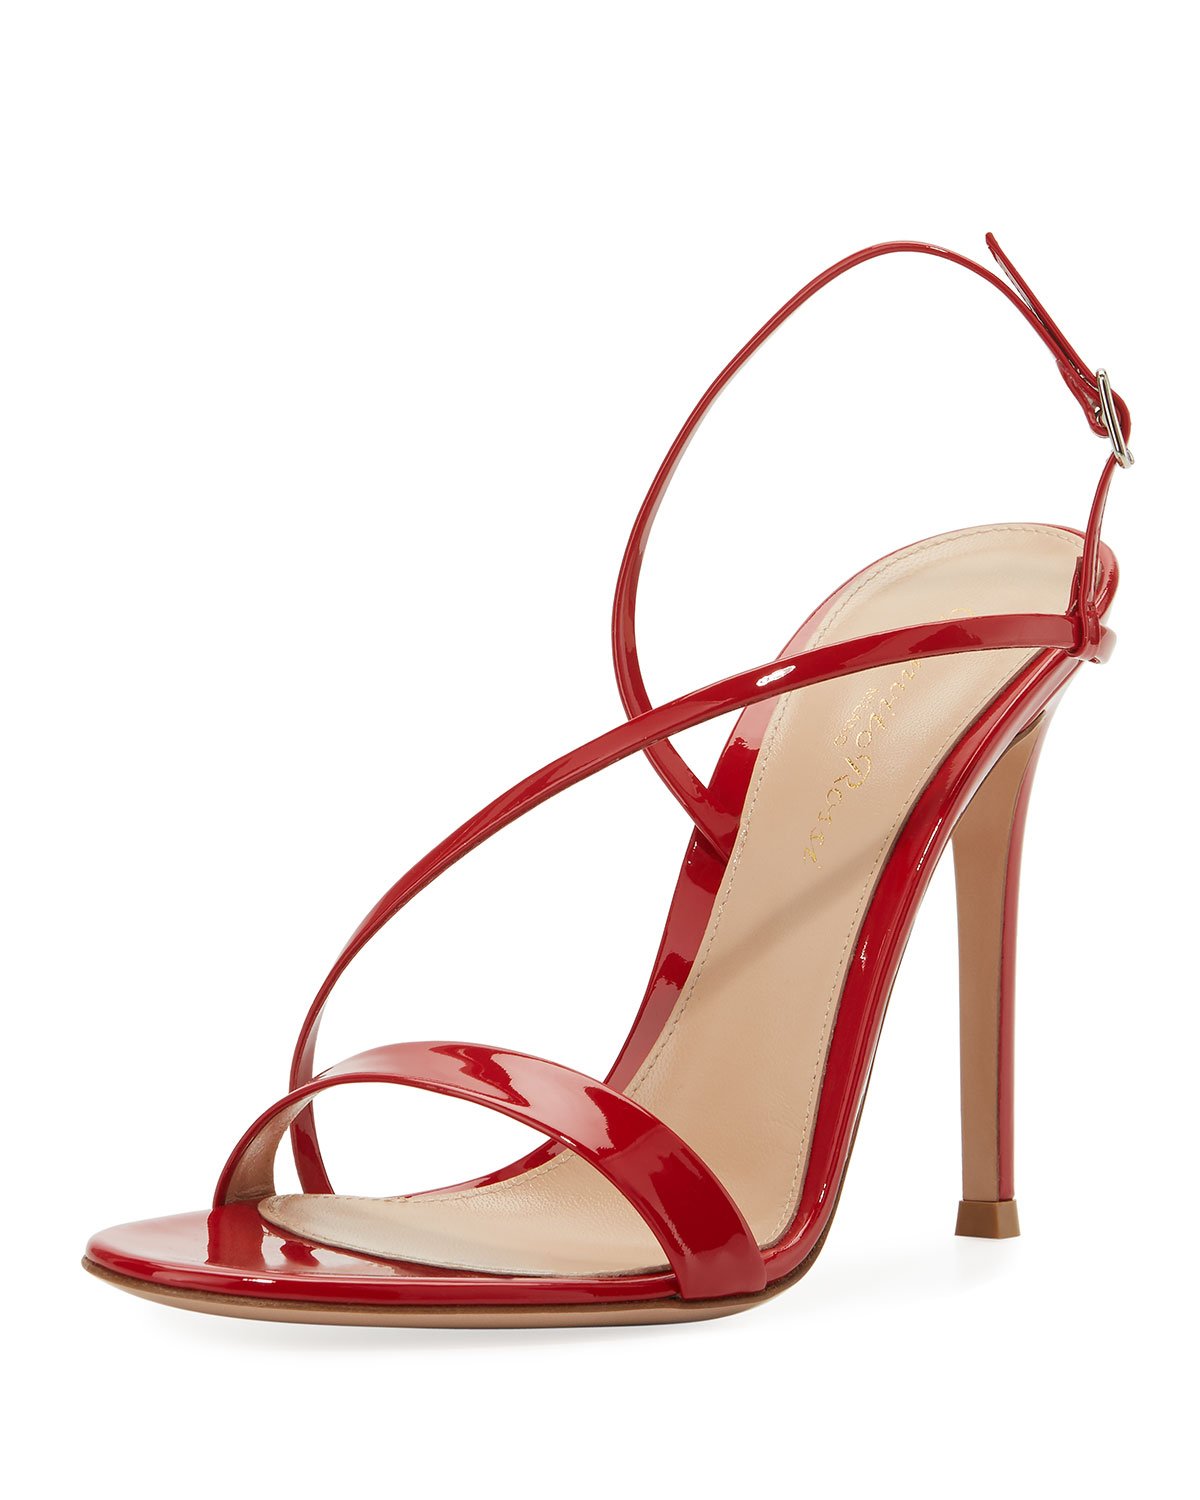 9cb6218be58 Gianvito Rossi Manhattan Strappy Patent 105mm Sandal